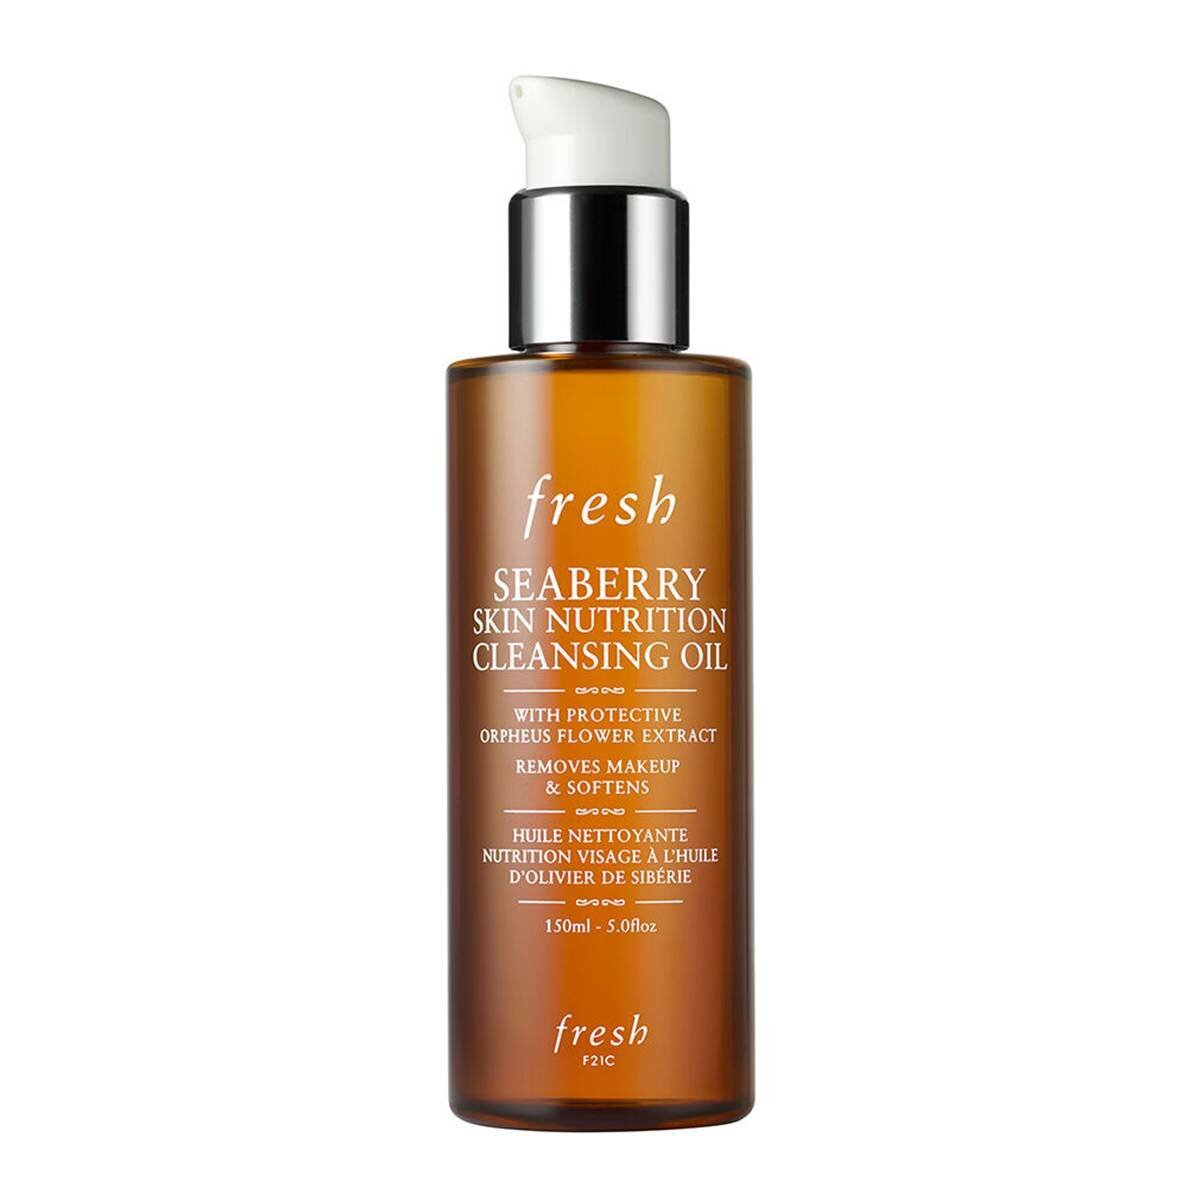 Fresh Beauty  Seaberry Skin Nutrition Cleansing Oil ($43)